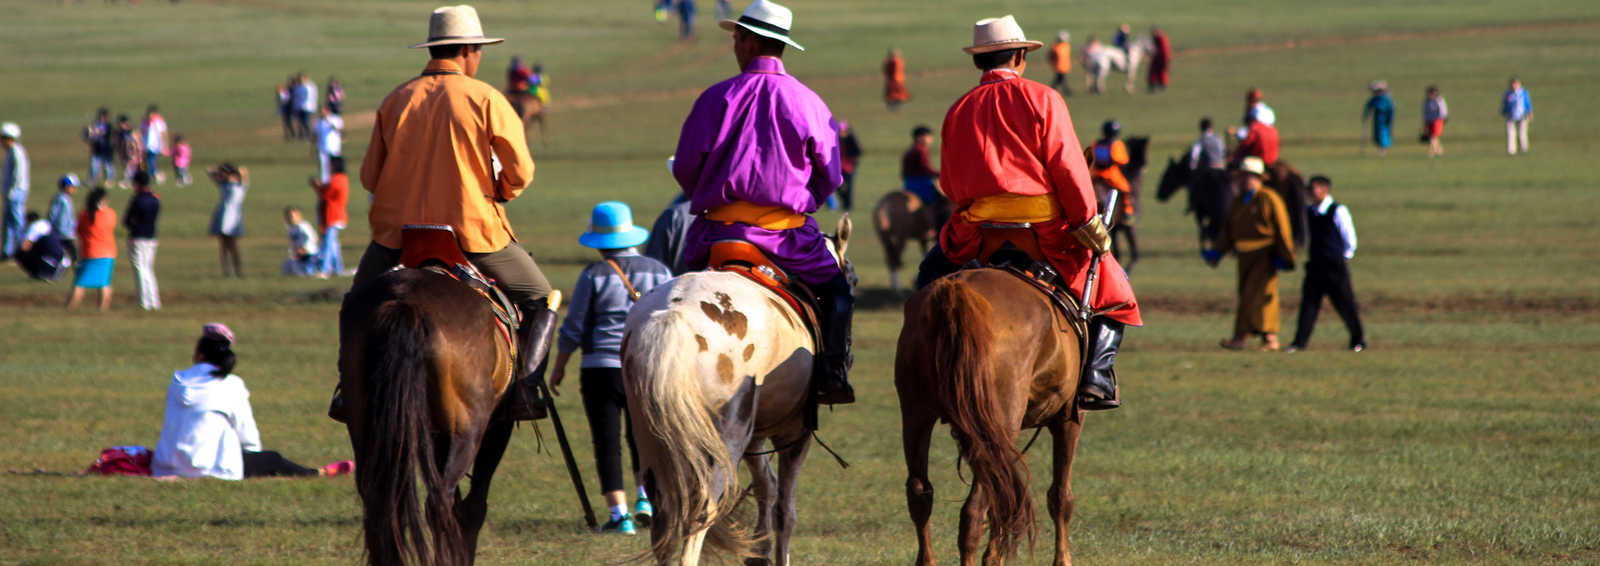 At the horse race, Mongolia